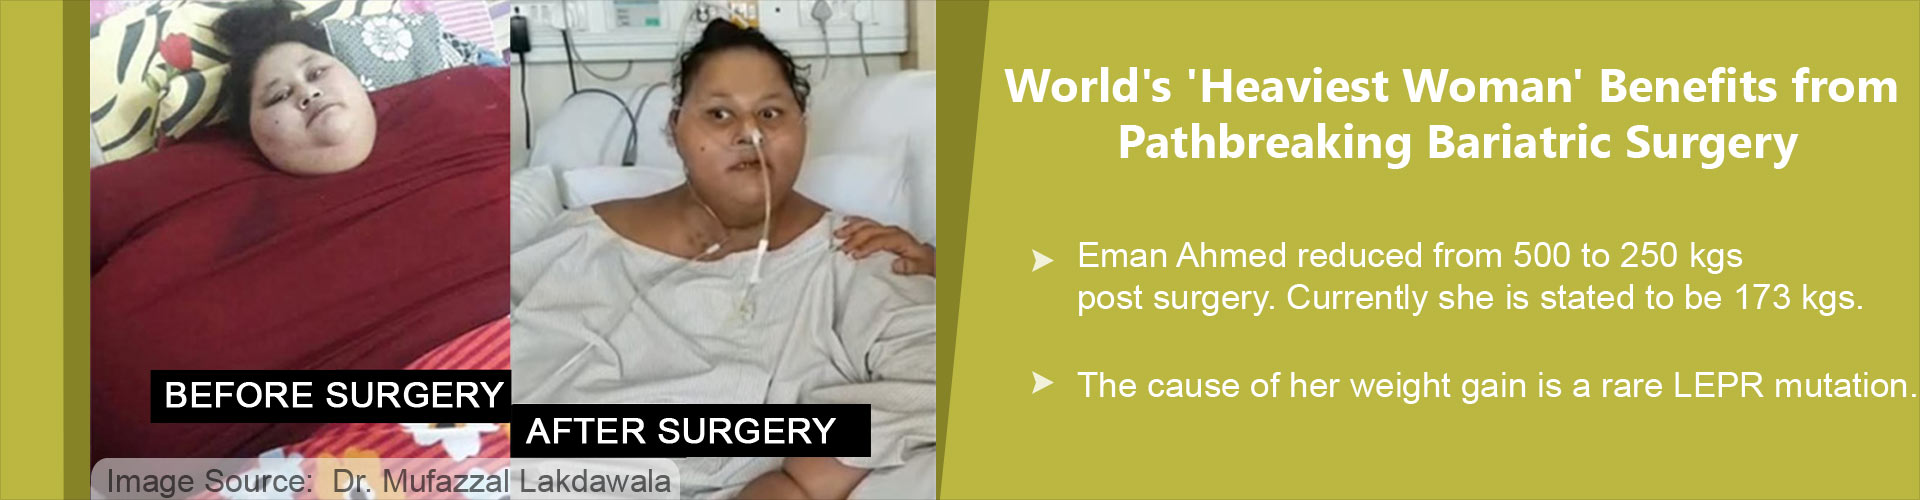 Exclusive Interview With Dr. Muffazal Lakdawala - Bariatric Surgeon of 500kg Egyptian Woman